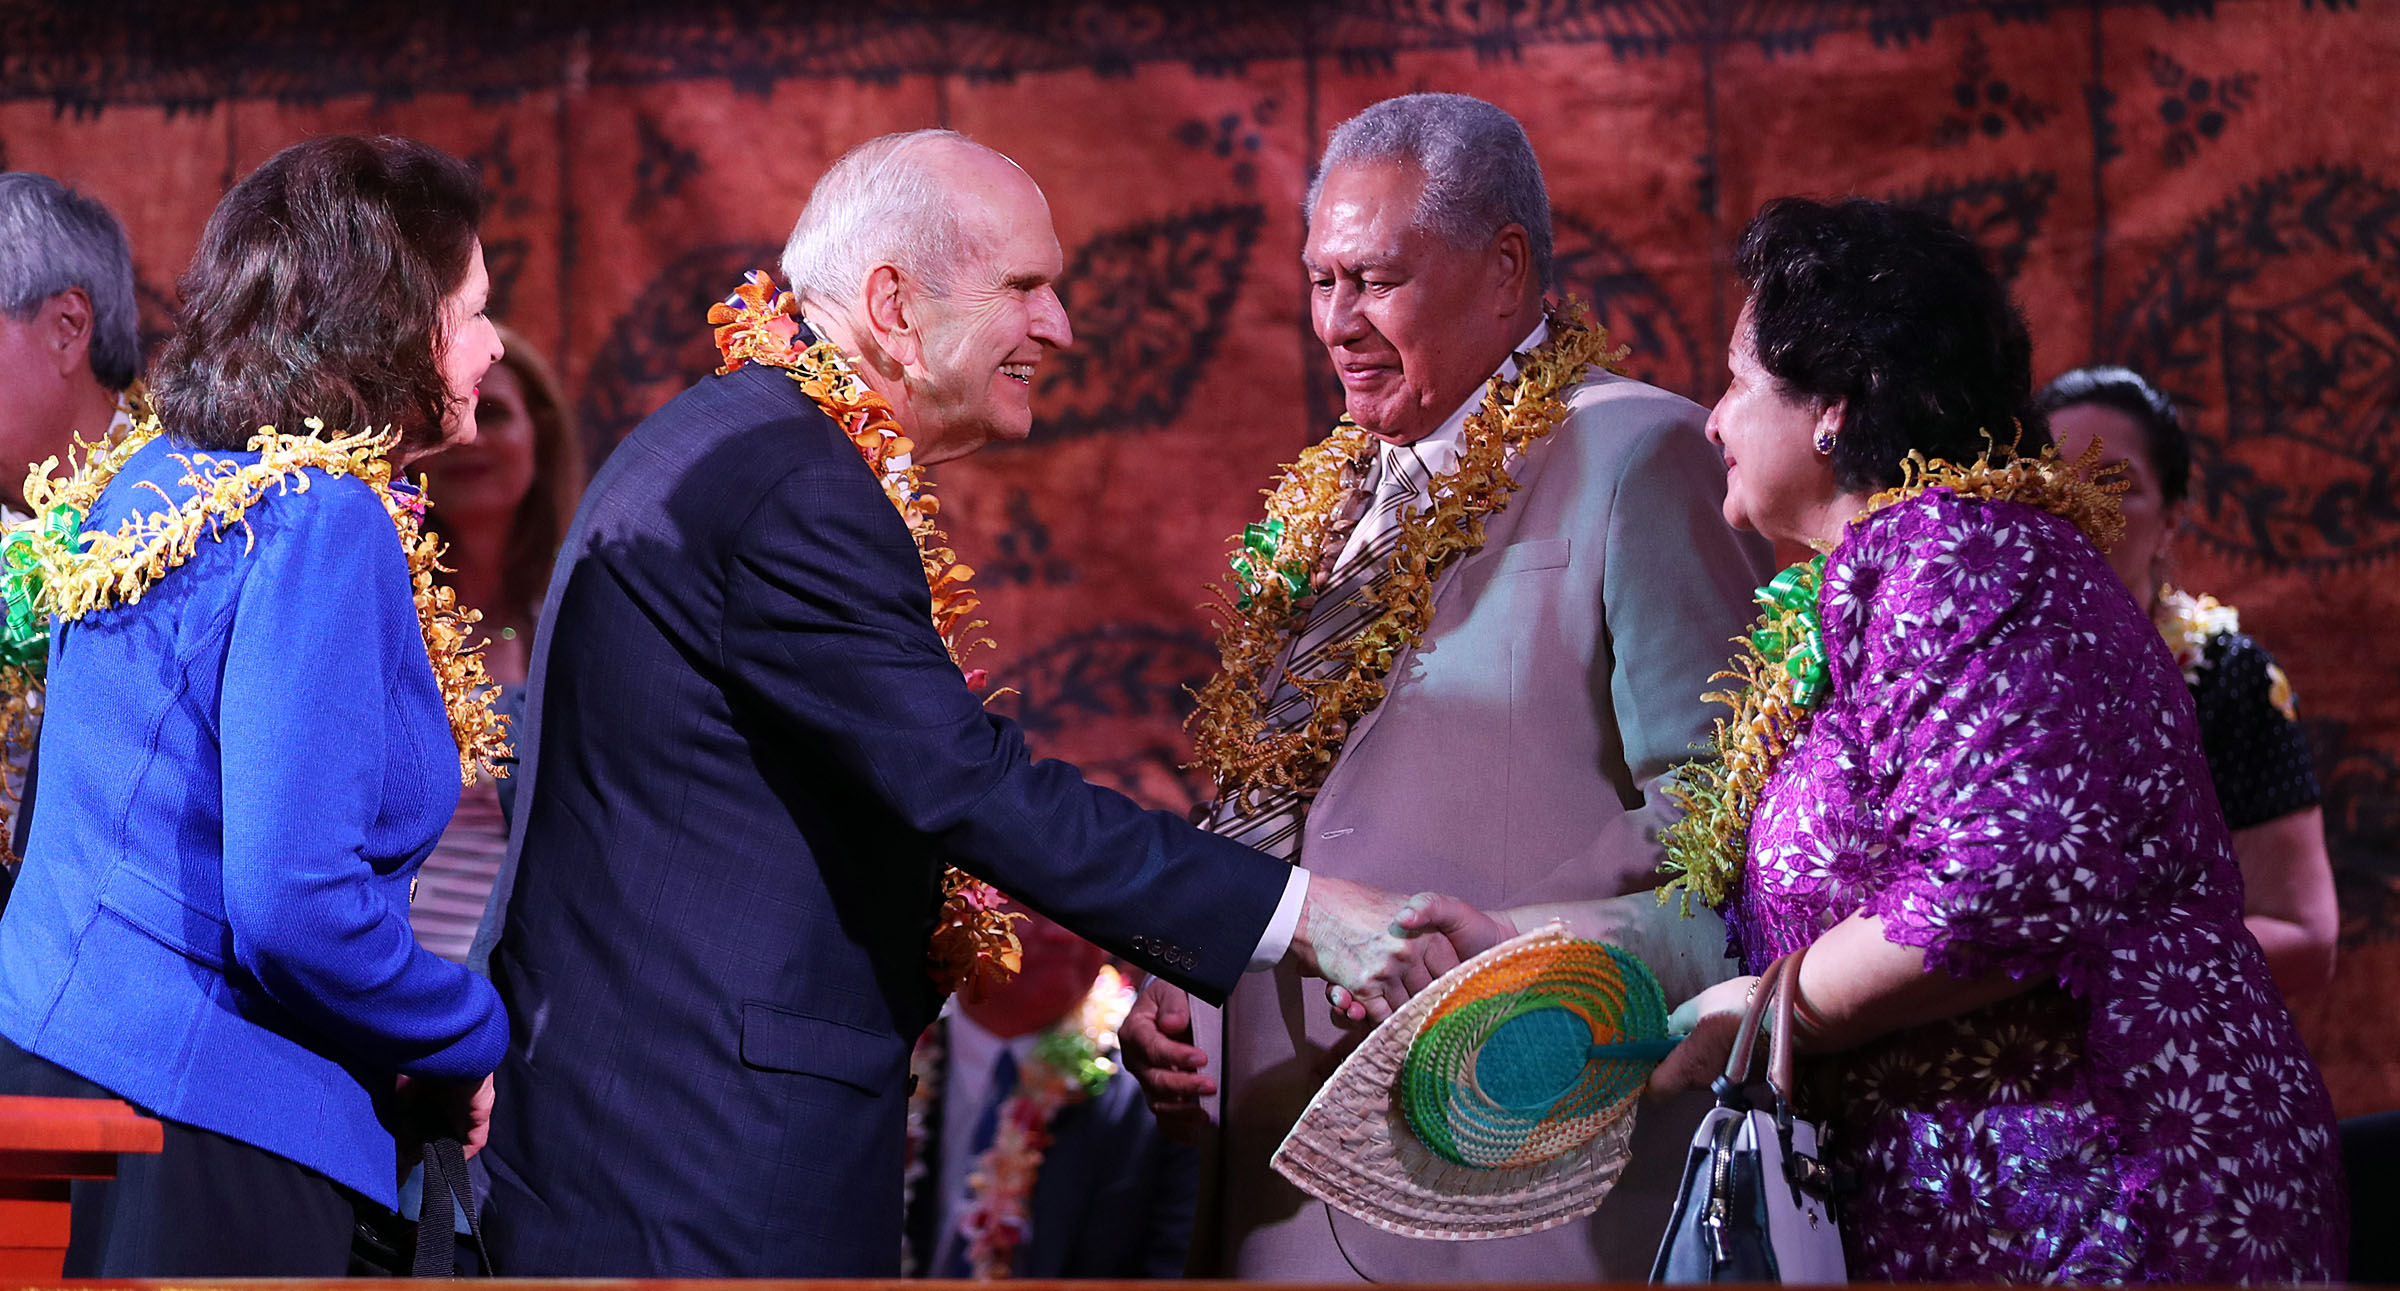 President Russell M. Nelson of The Church of Jesus Christ of Latter-day Saints and his wife, Sister Wendy Nelson, left, greet His Highness Tuimaleali'ifano Va'aleto'a Eti Sualauvi II, Samoa Head of State, and his wife Fa'amausili Leinafo Tuimaleali'ifano, following a devotional in Apia, Samoa on Saturday, May 18, 2019.